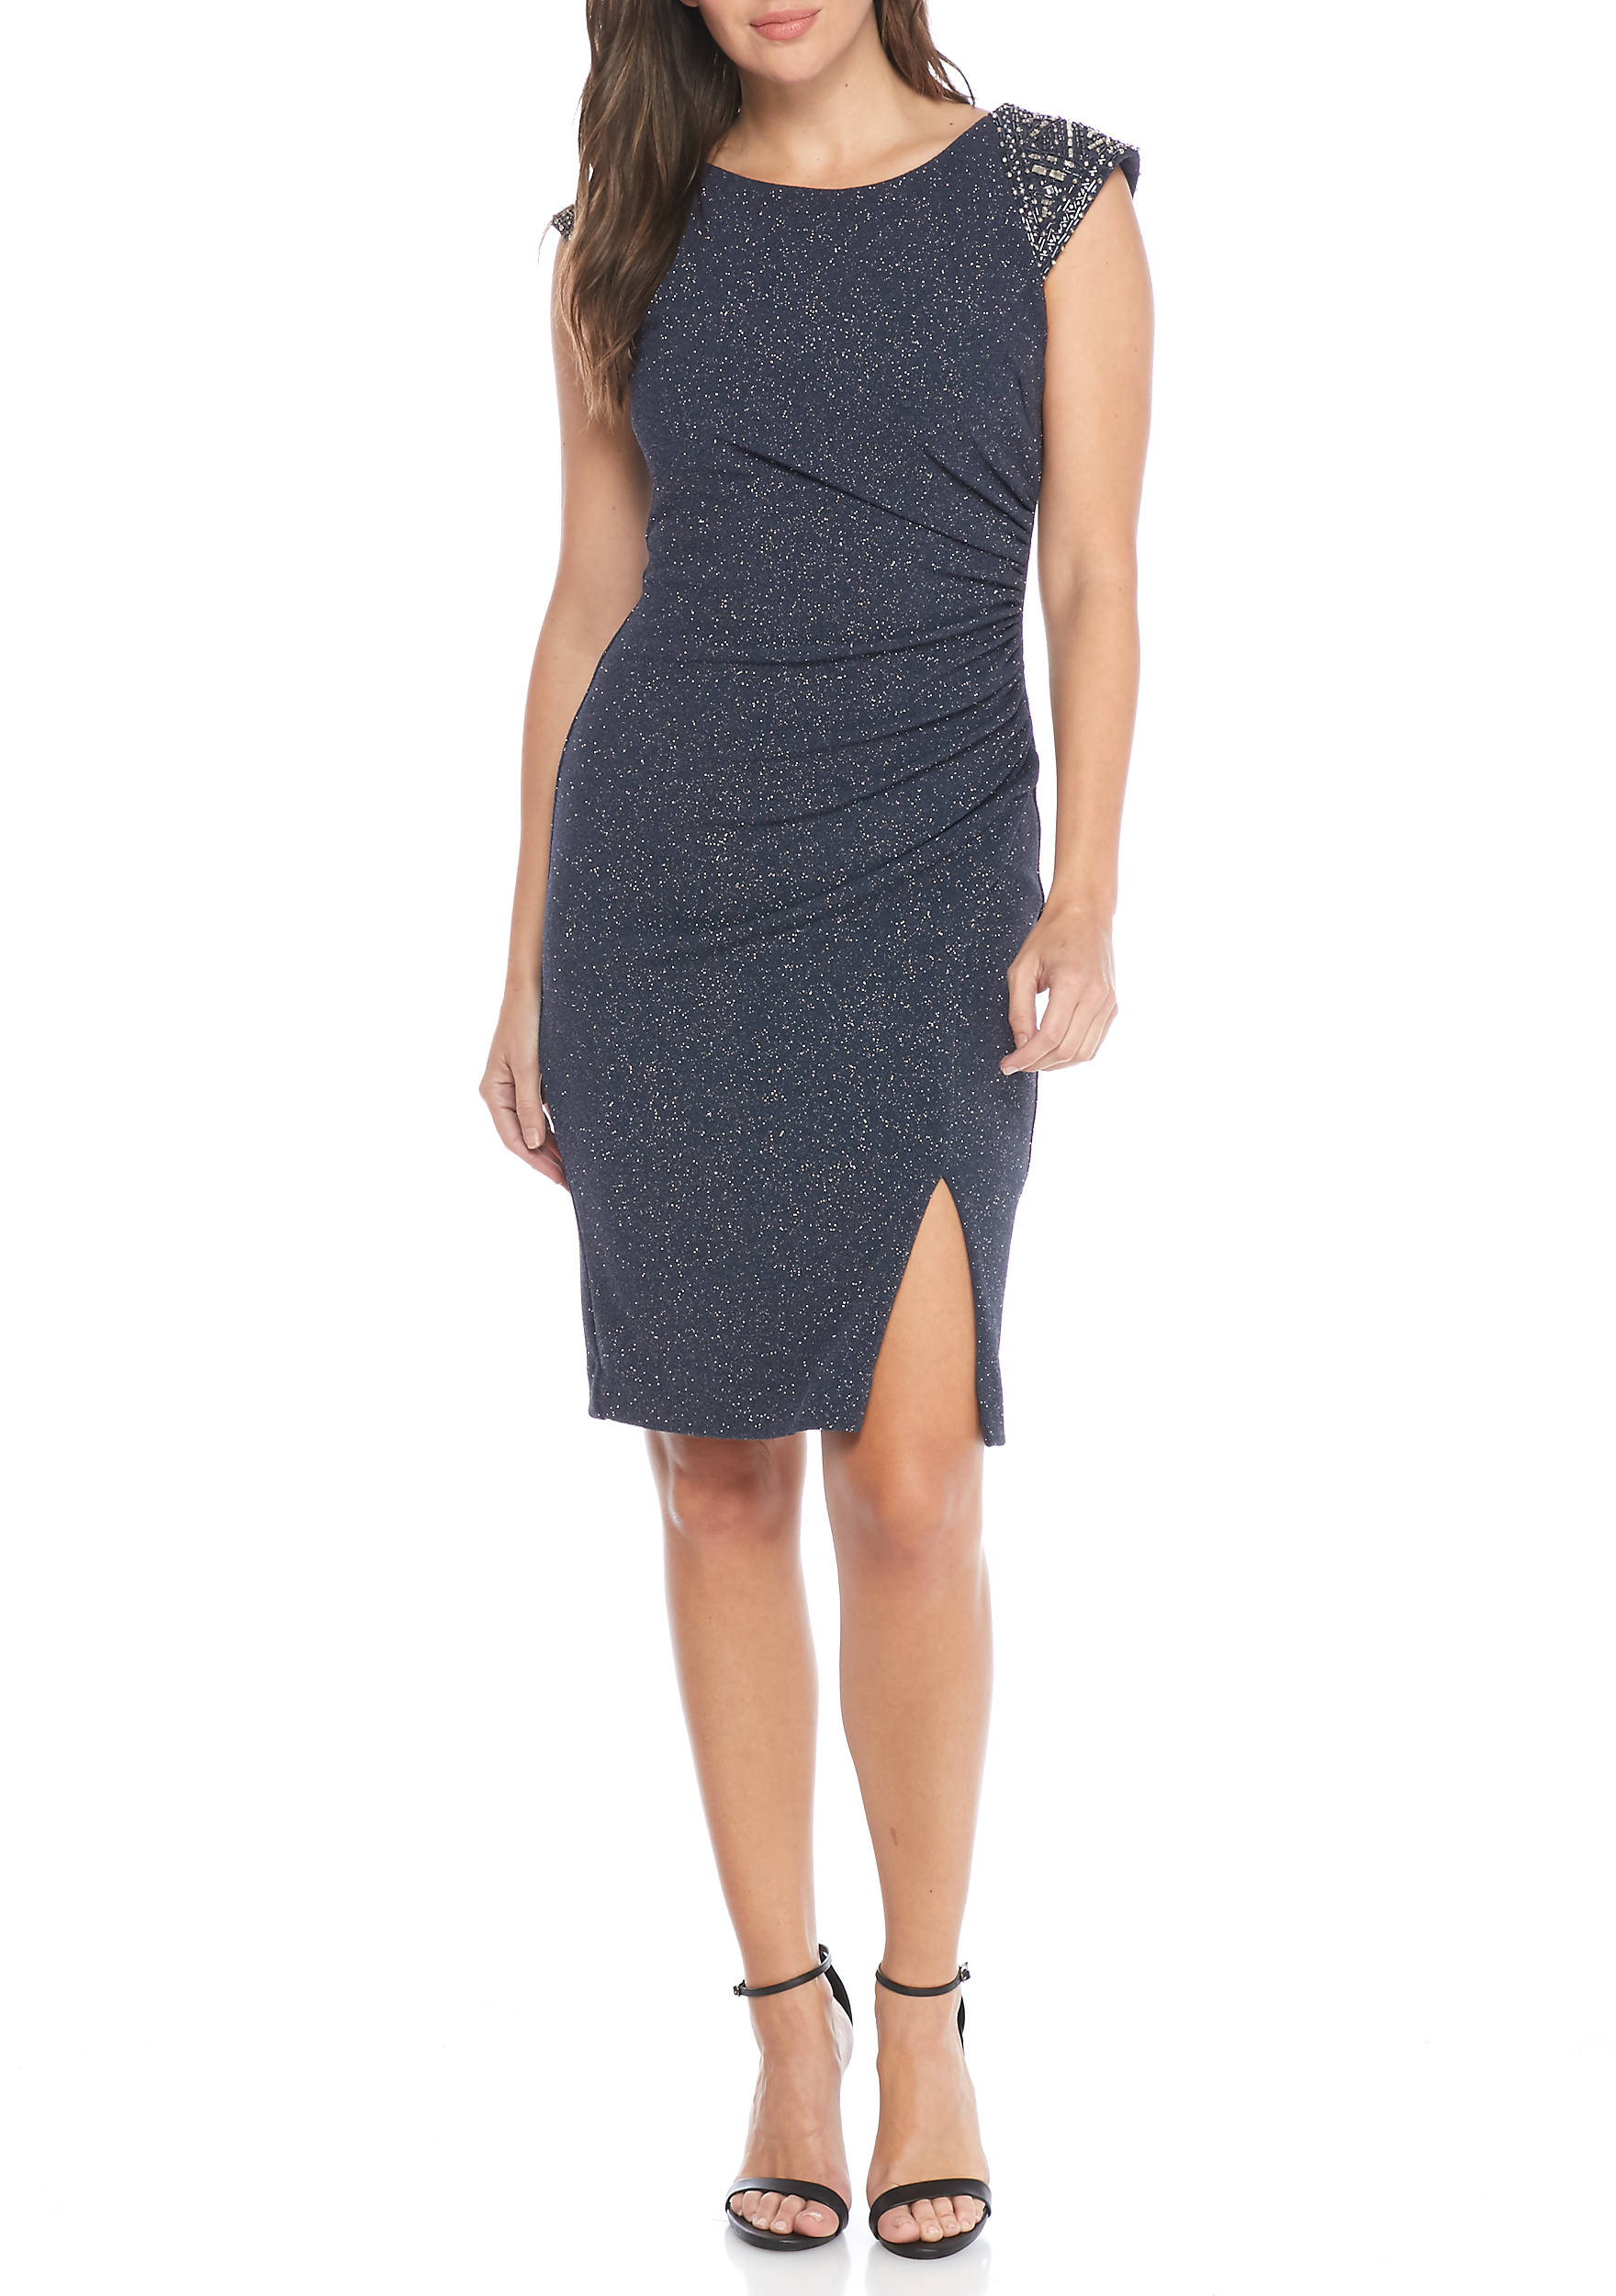 Vince Camuto Bead and Glitter Sheath Cocktail Dress   belk